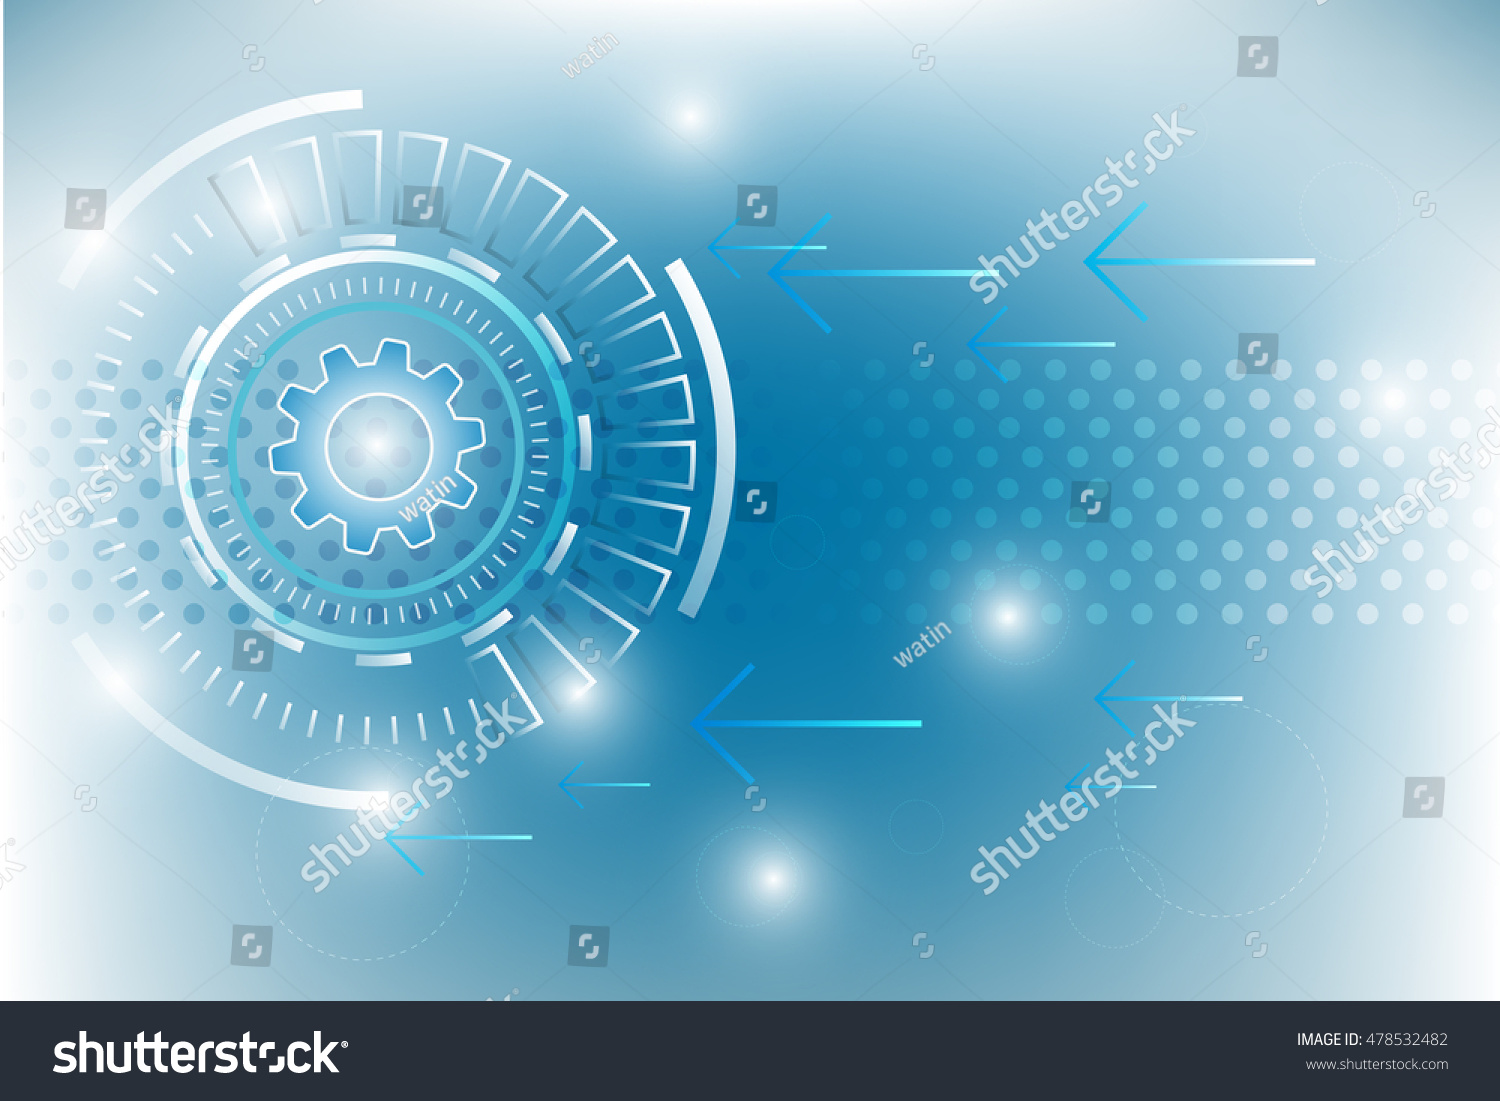 Abstract Technology Background With Light Effect: Abstract Technology Background Design Light Effect Stock